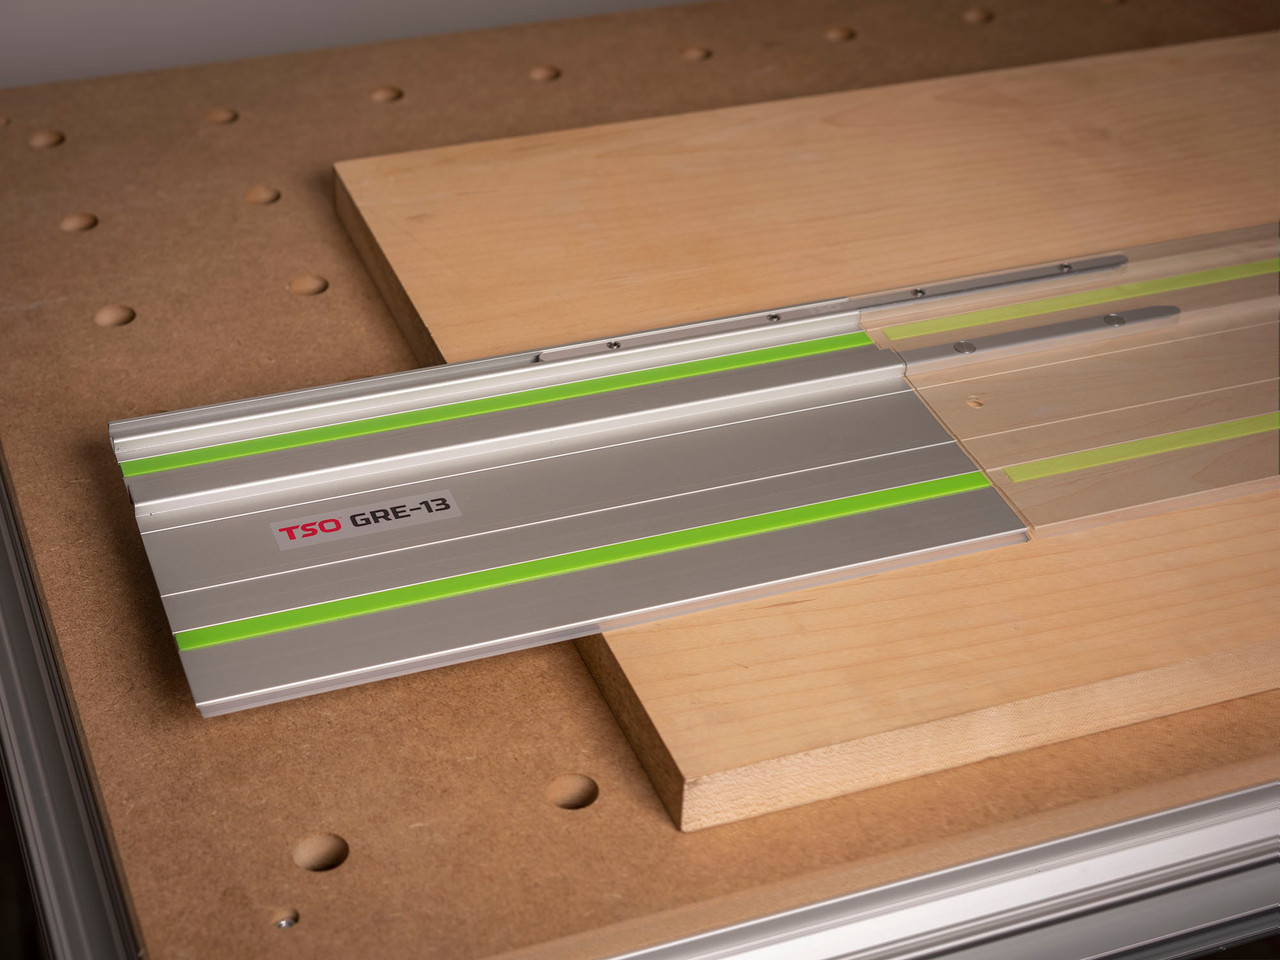 Image depicting the GRE-13 Guide Rail Extension connected to a Festool guide rail.